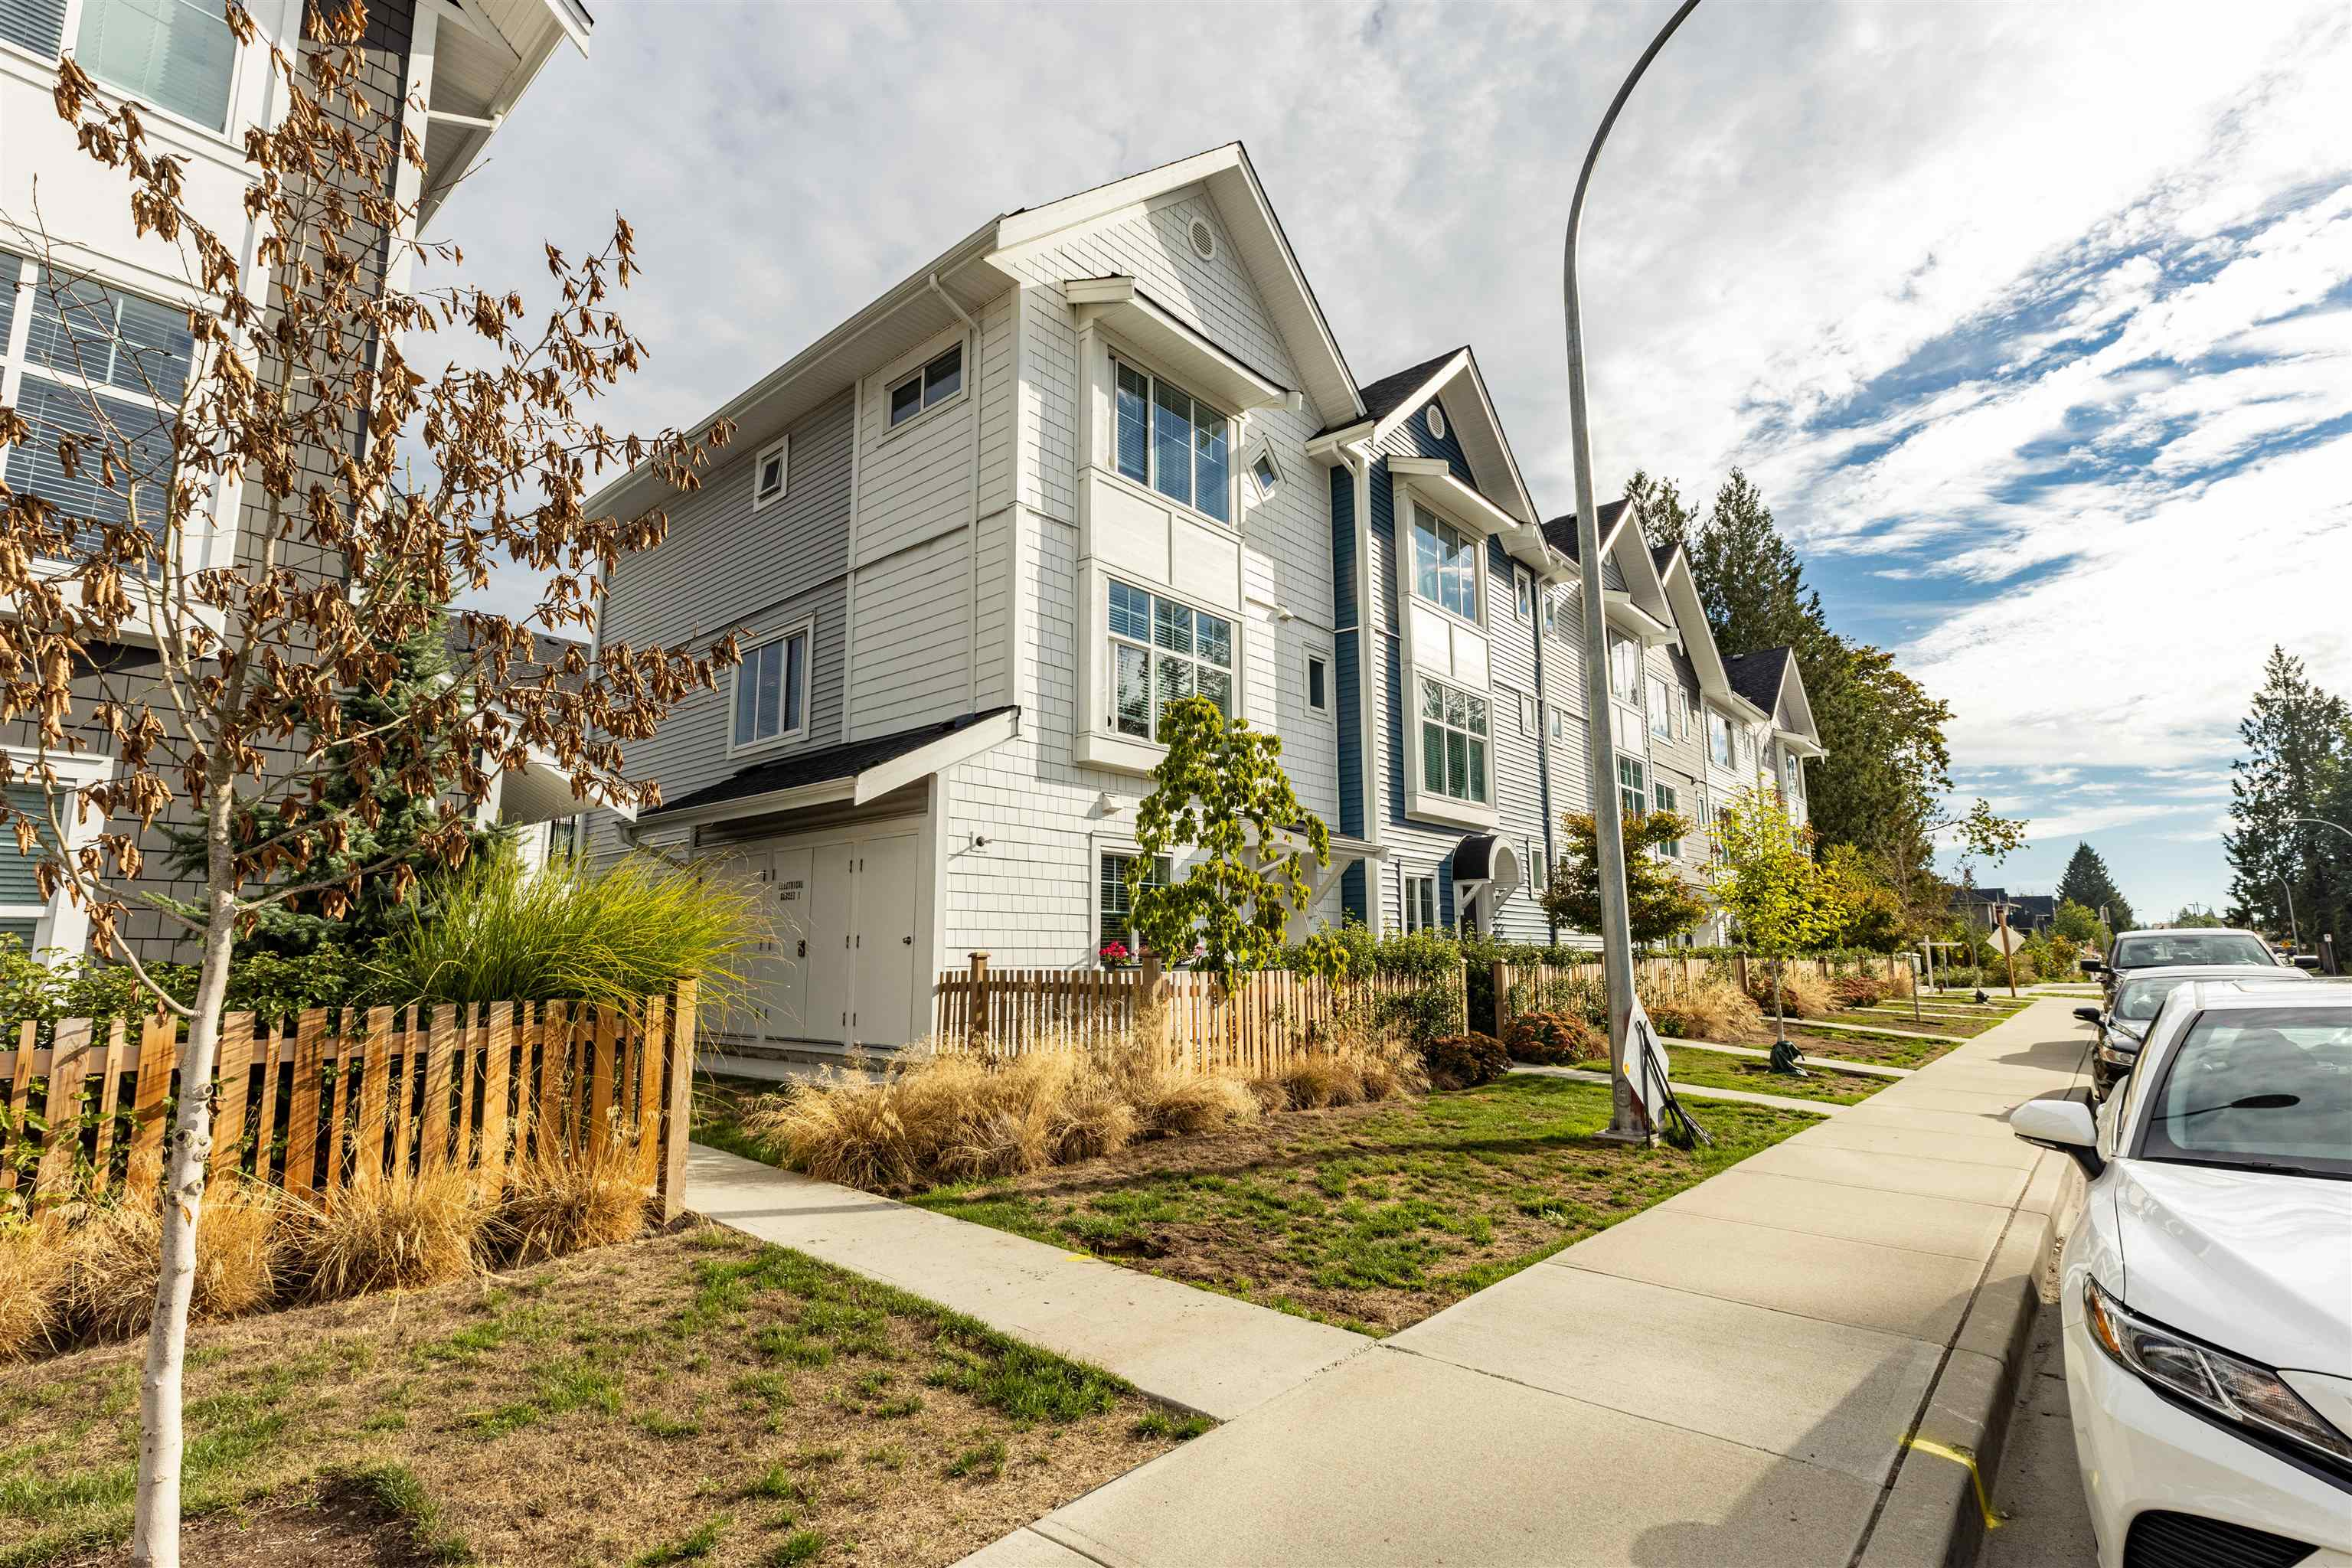 6 20451 84 AVENUE - Willoughby Heights Townhouse for sale, 4 Bedrooms (R2616635) - #1